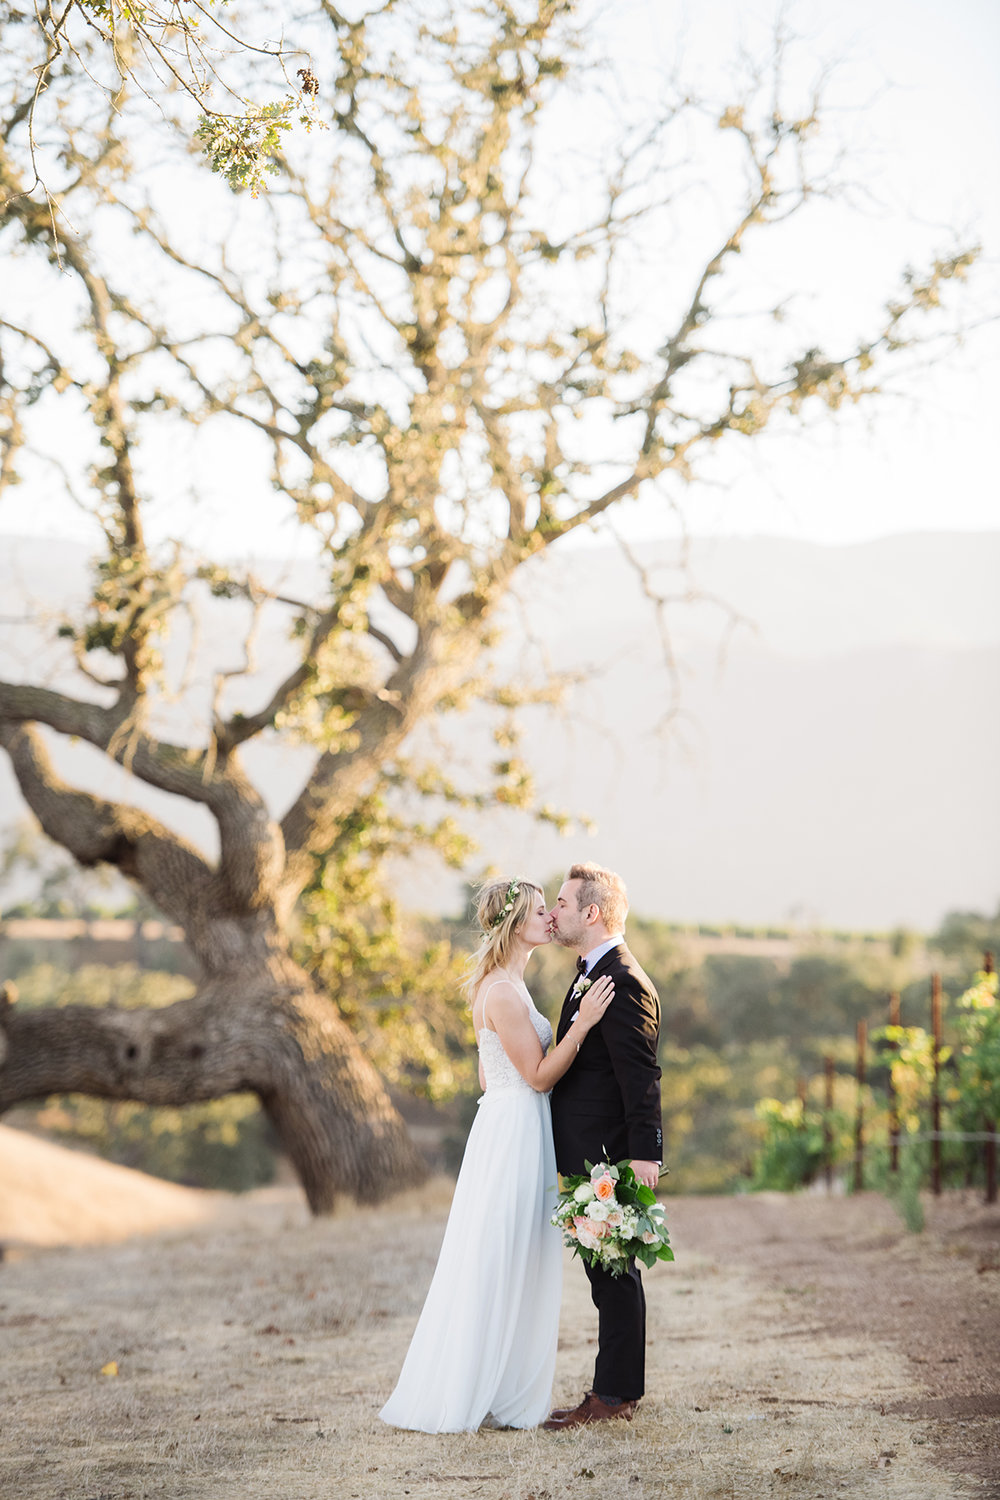 An amazing couple just married in the beautiful Santa Ynez Wine Country at Gainey Vineyards.